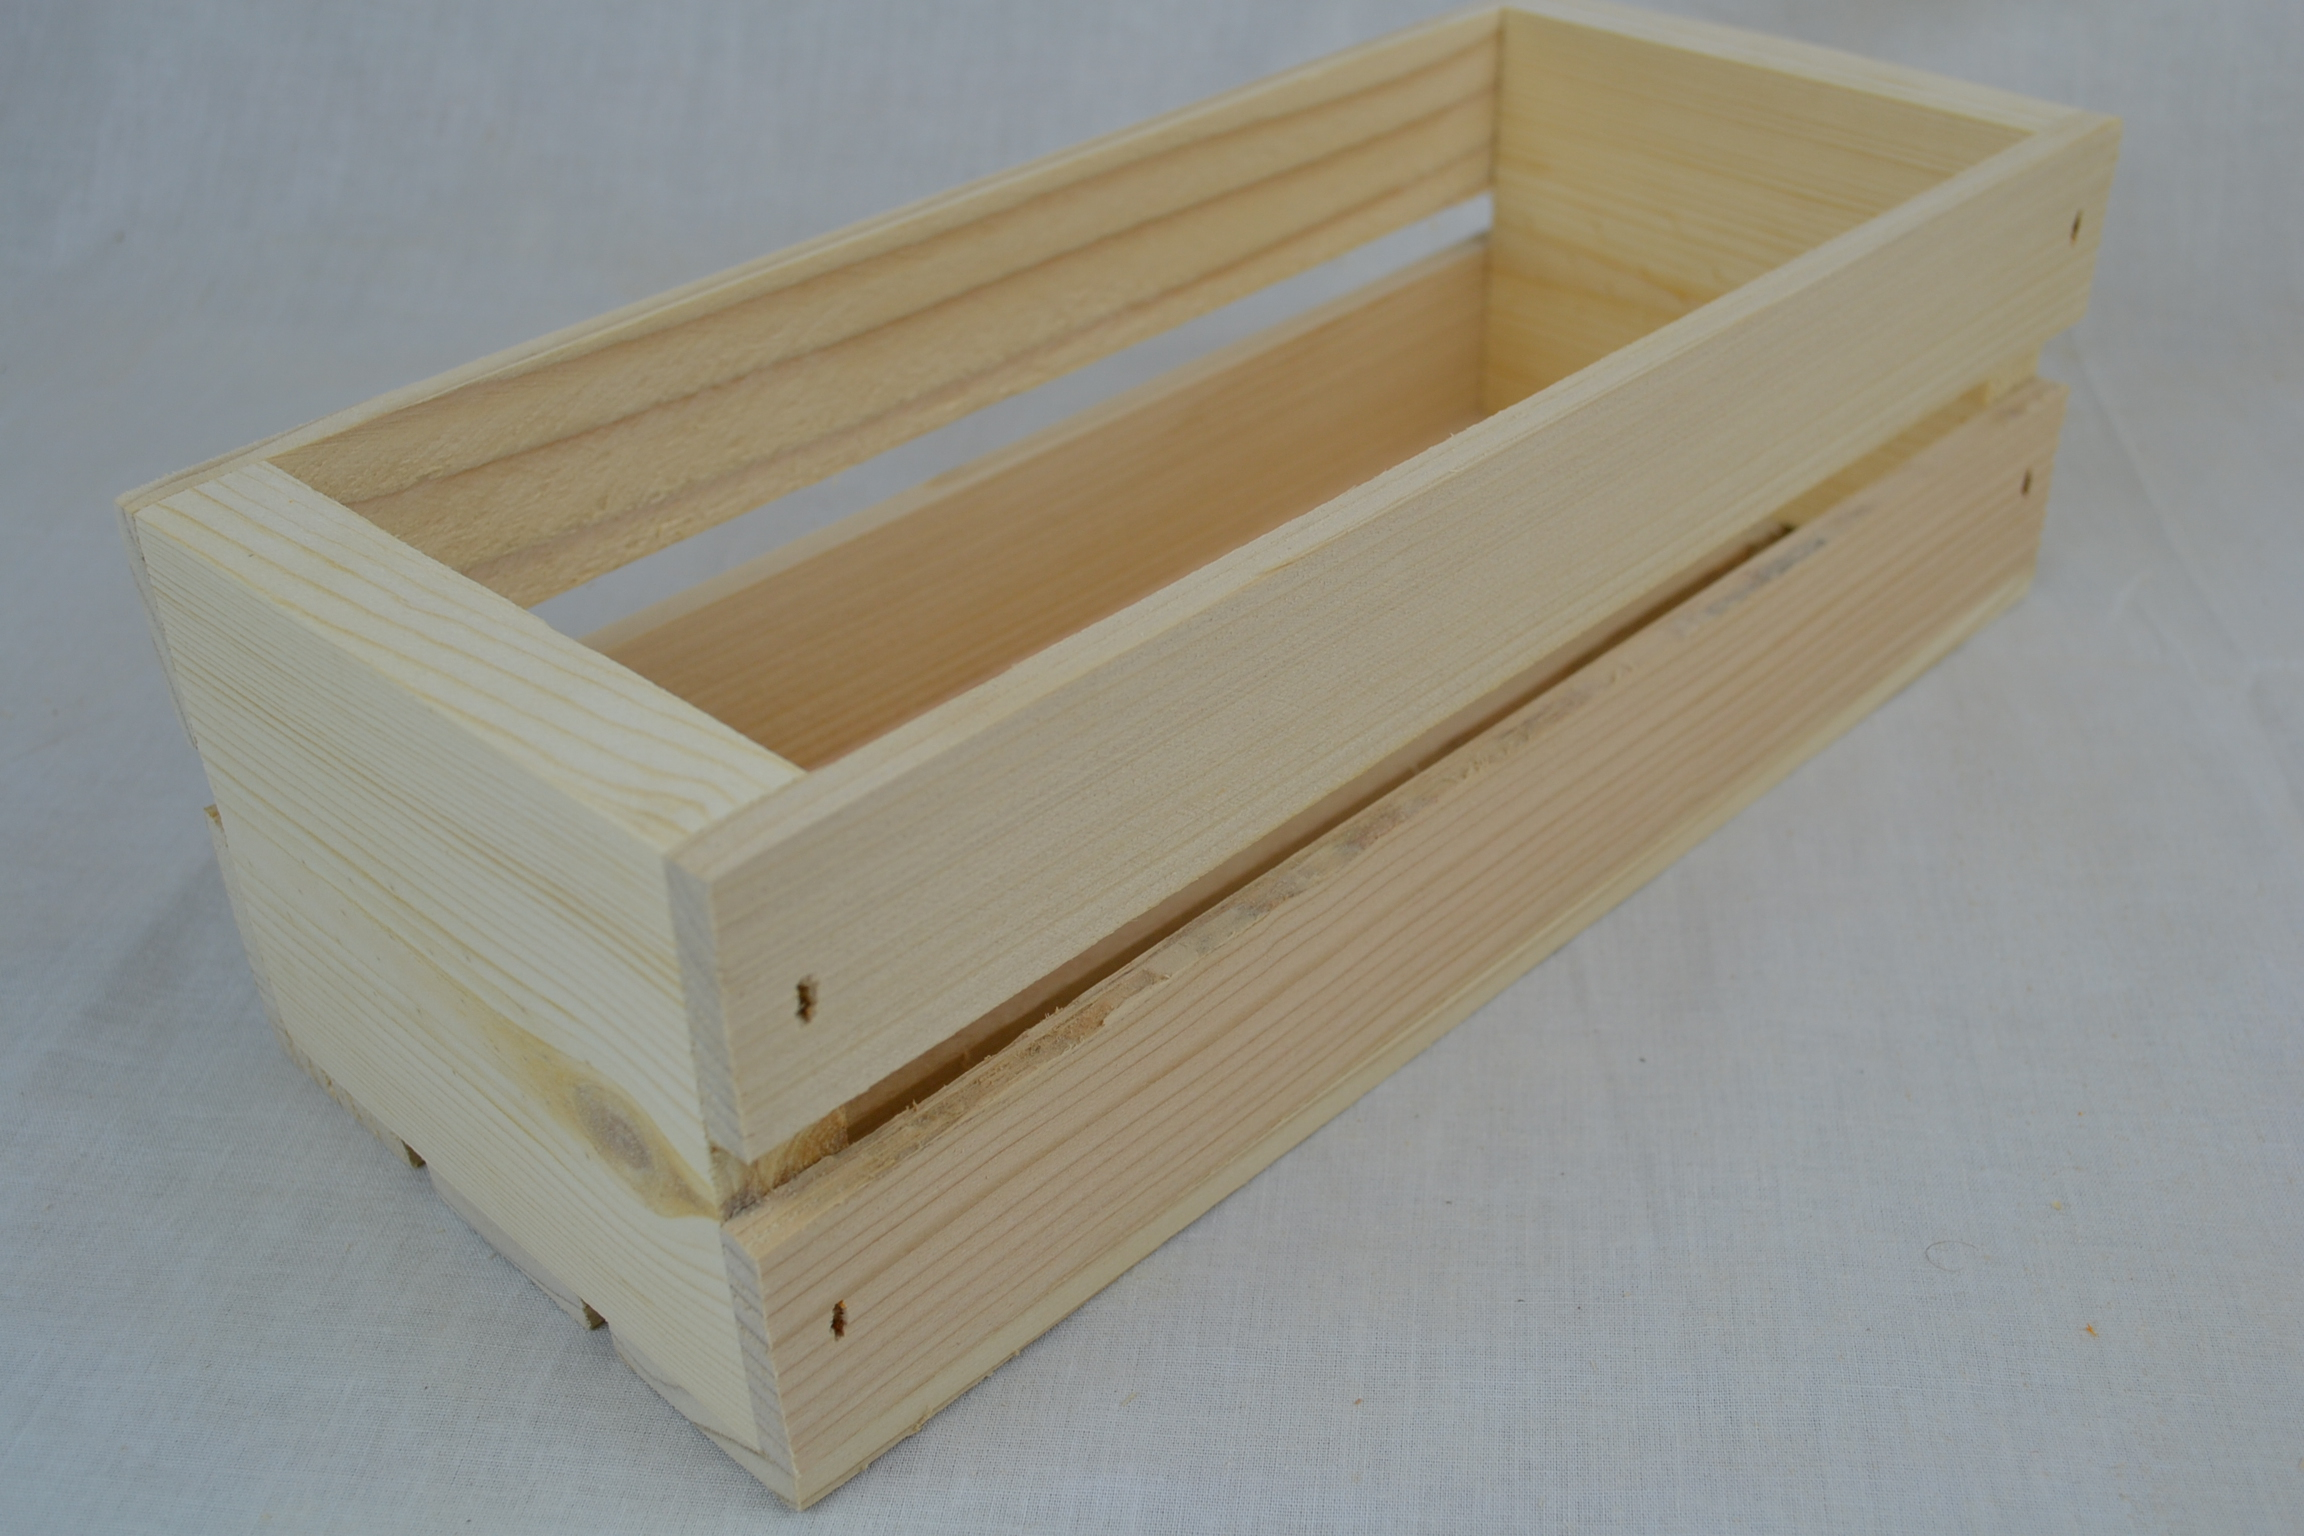 Old fashioned wooden crates 12 x 5 x 4 qty 12 for Old wooden crates